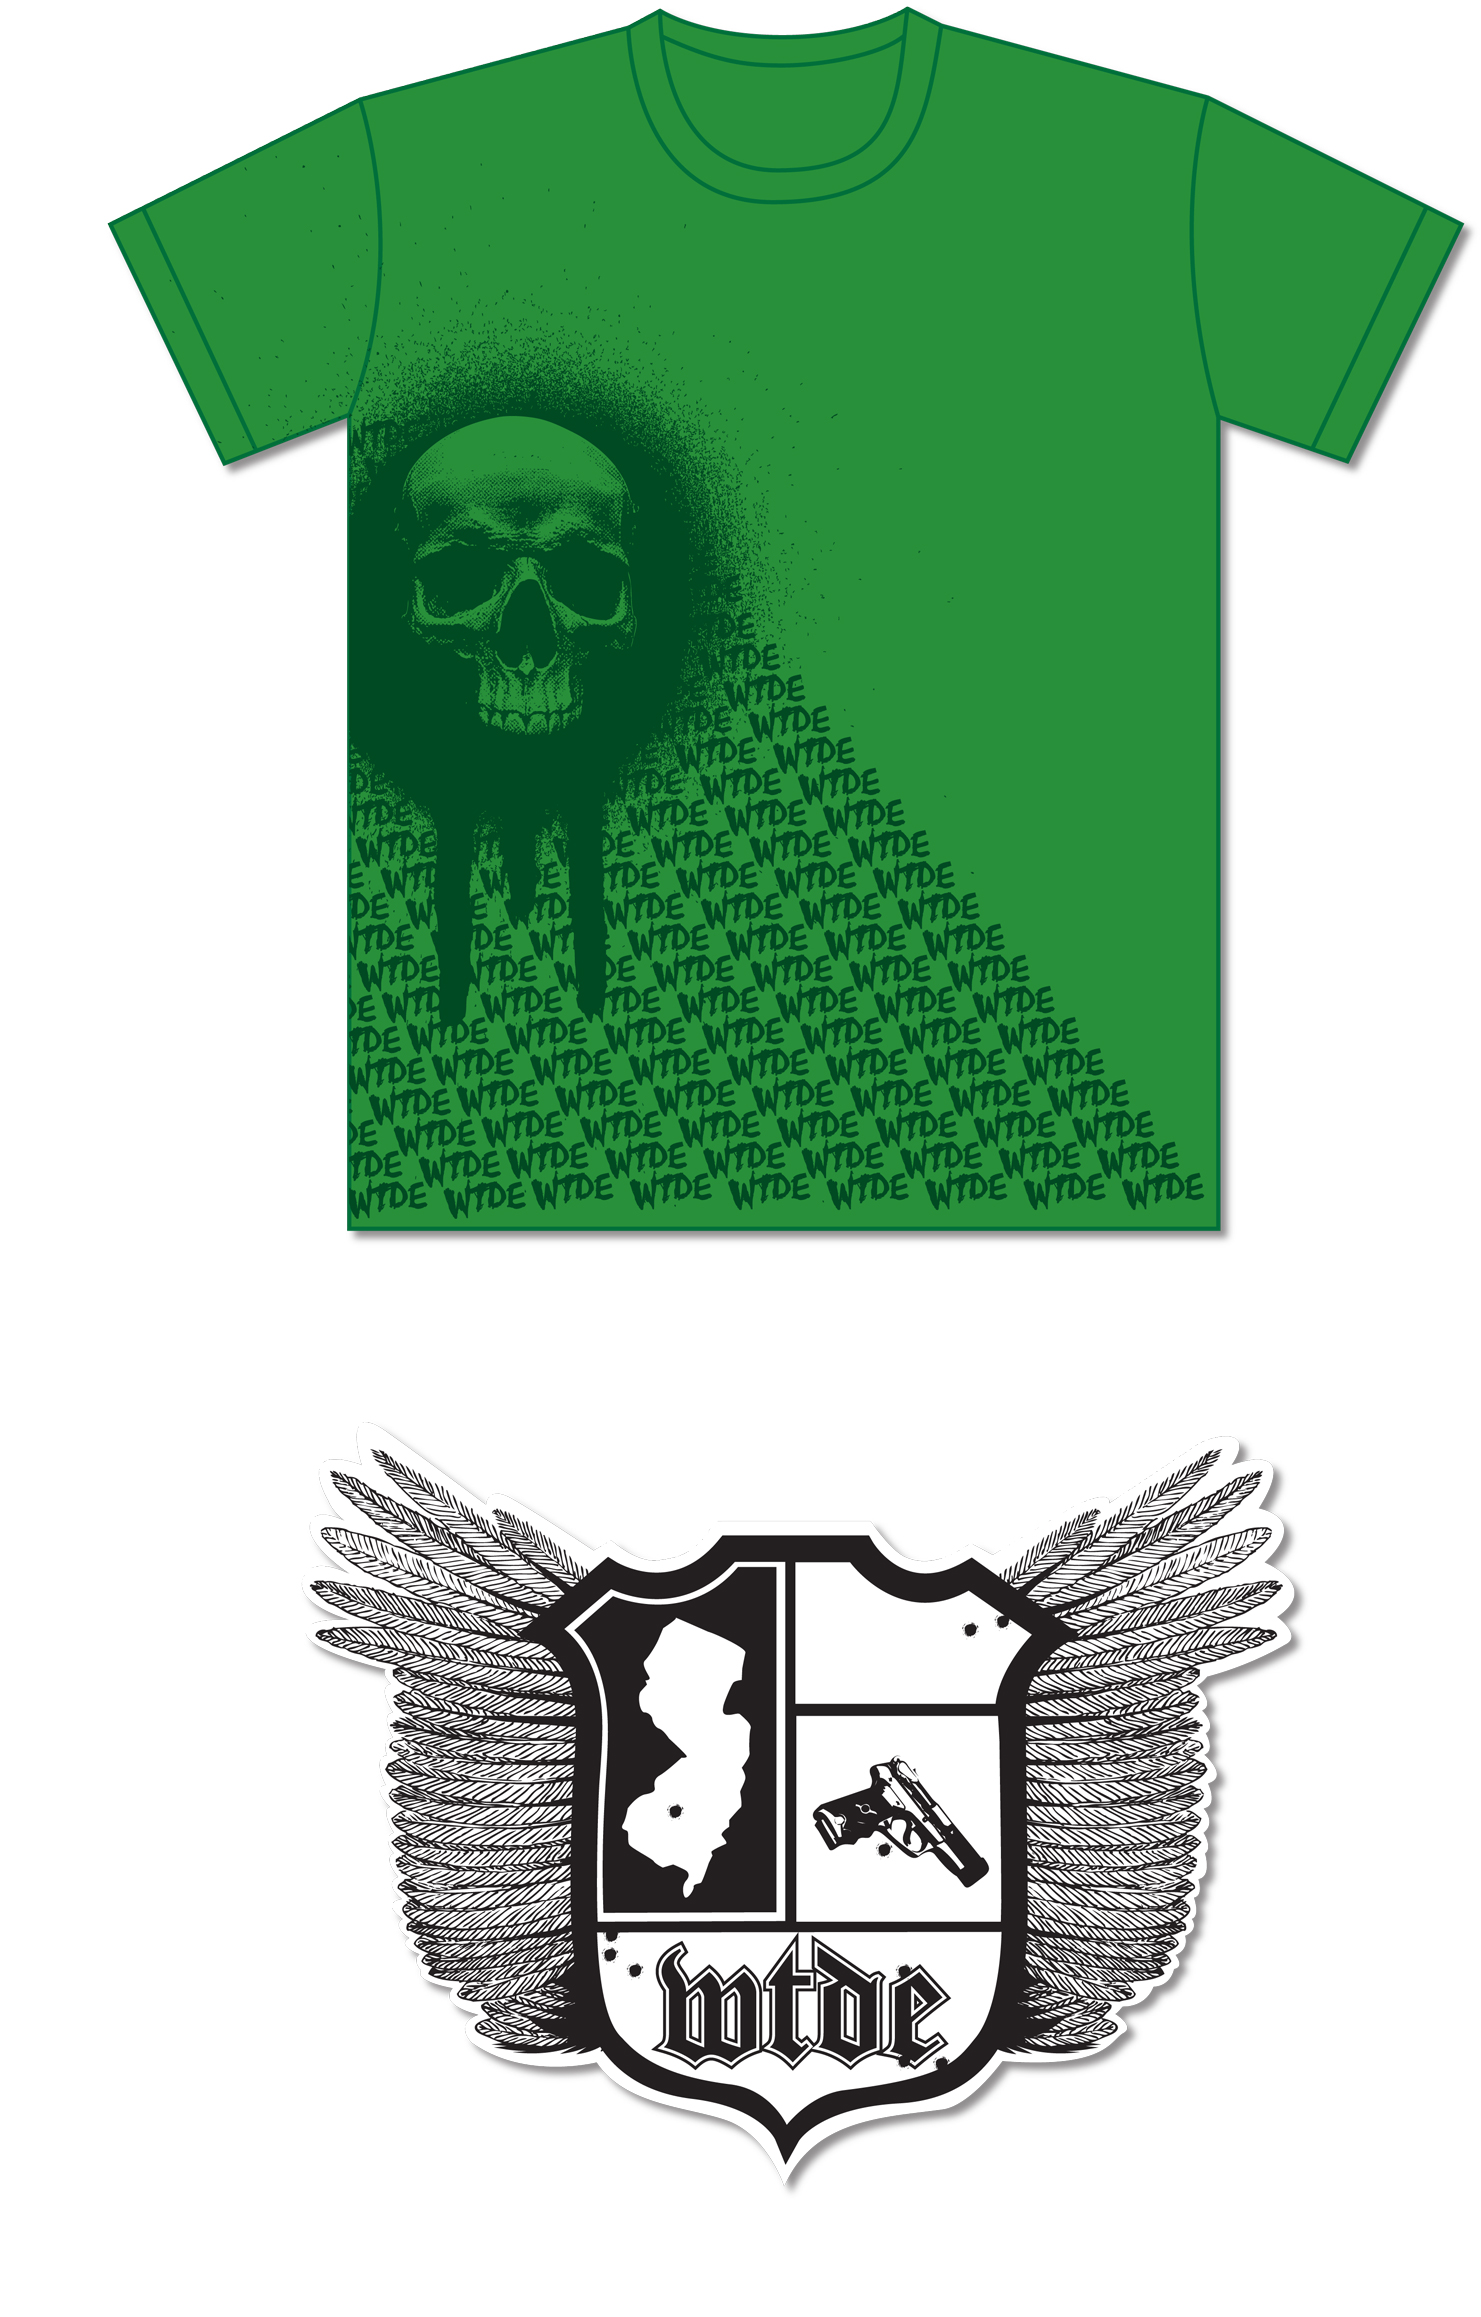 Shirt design green - When These Days End T Shirt T Shirt Design And Sticker Design For The Band When These Days End